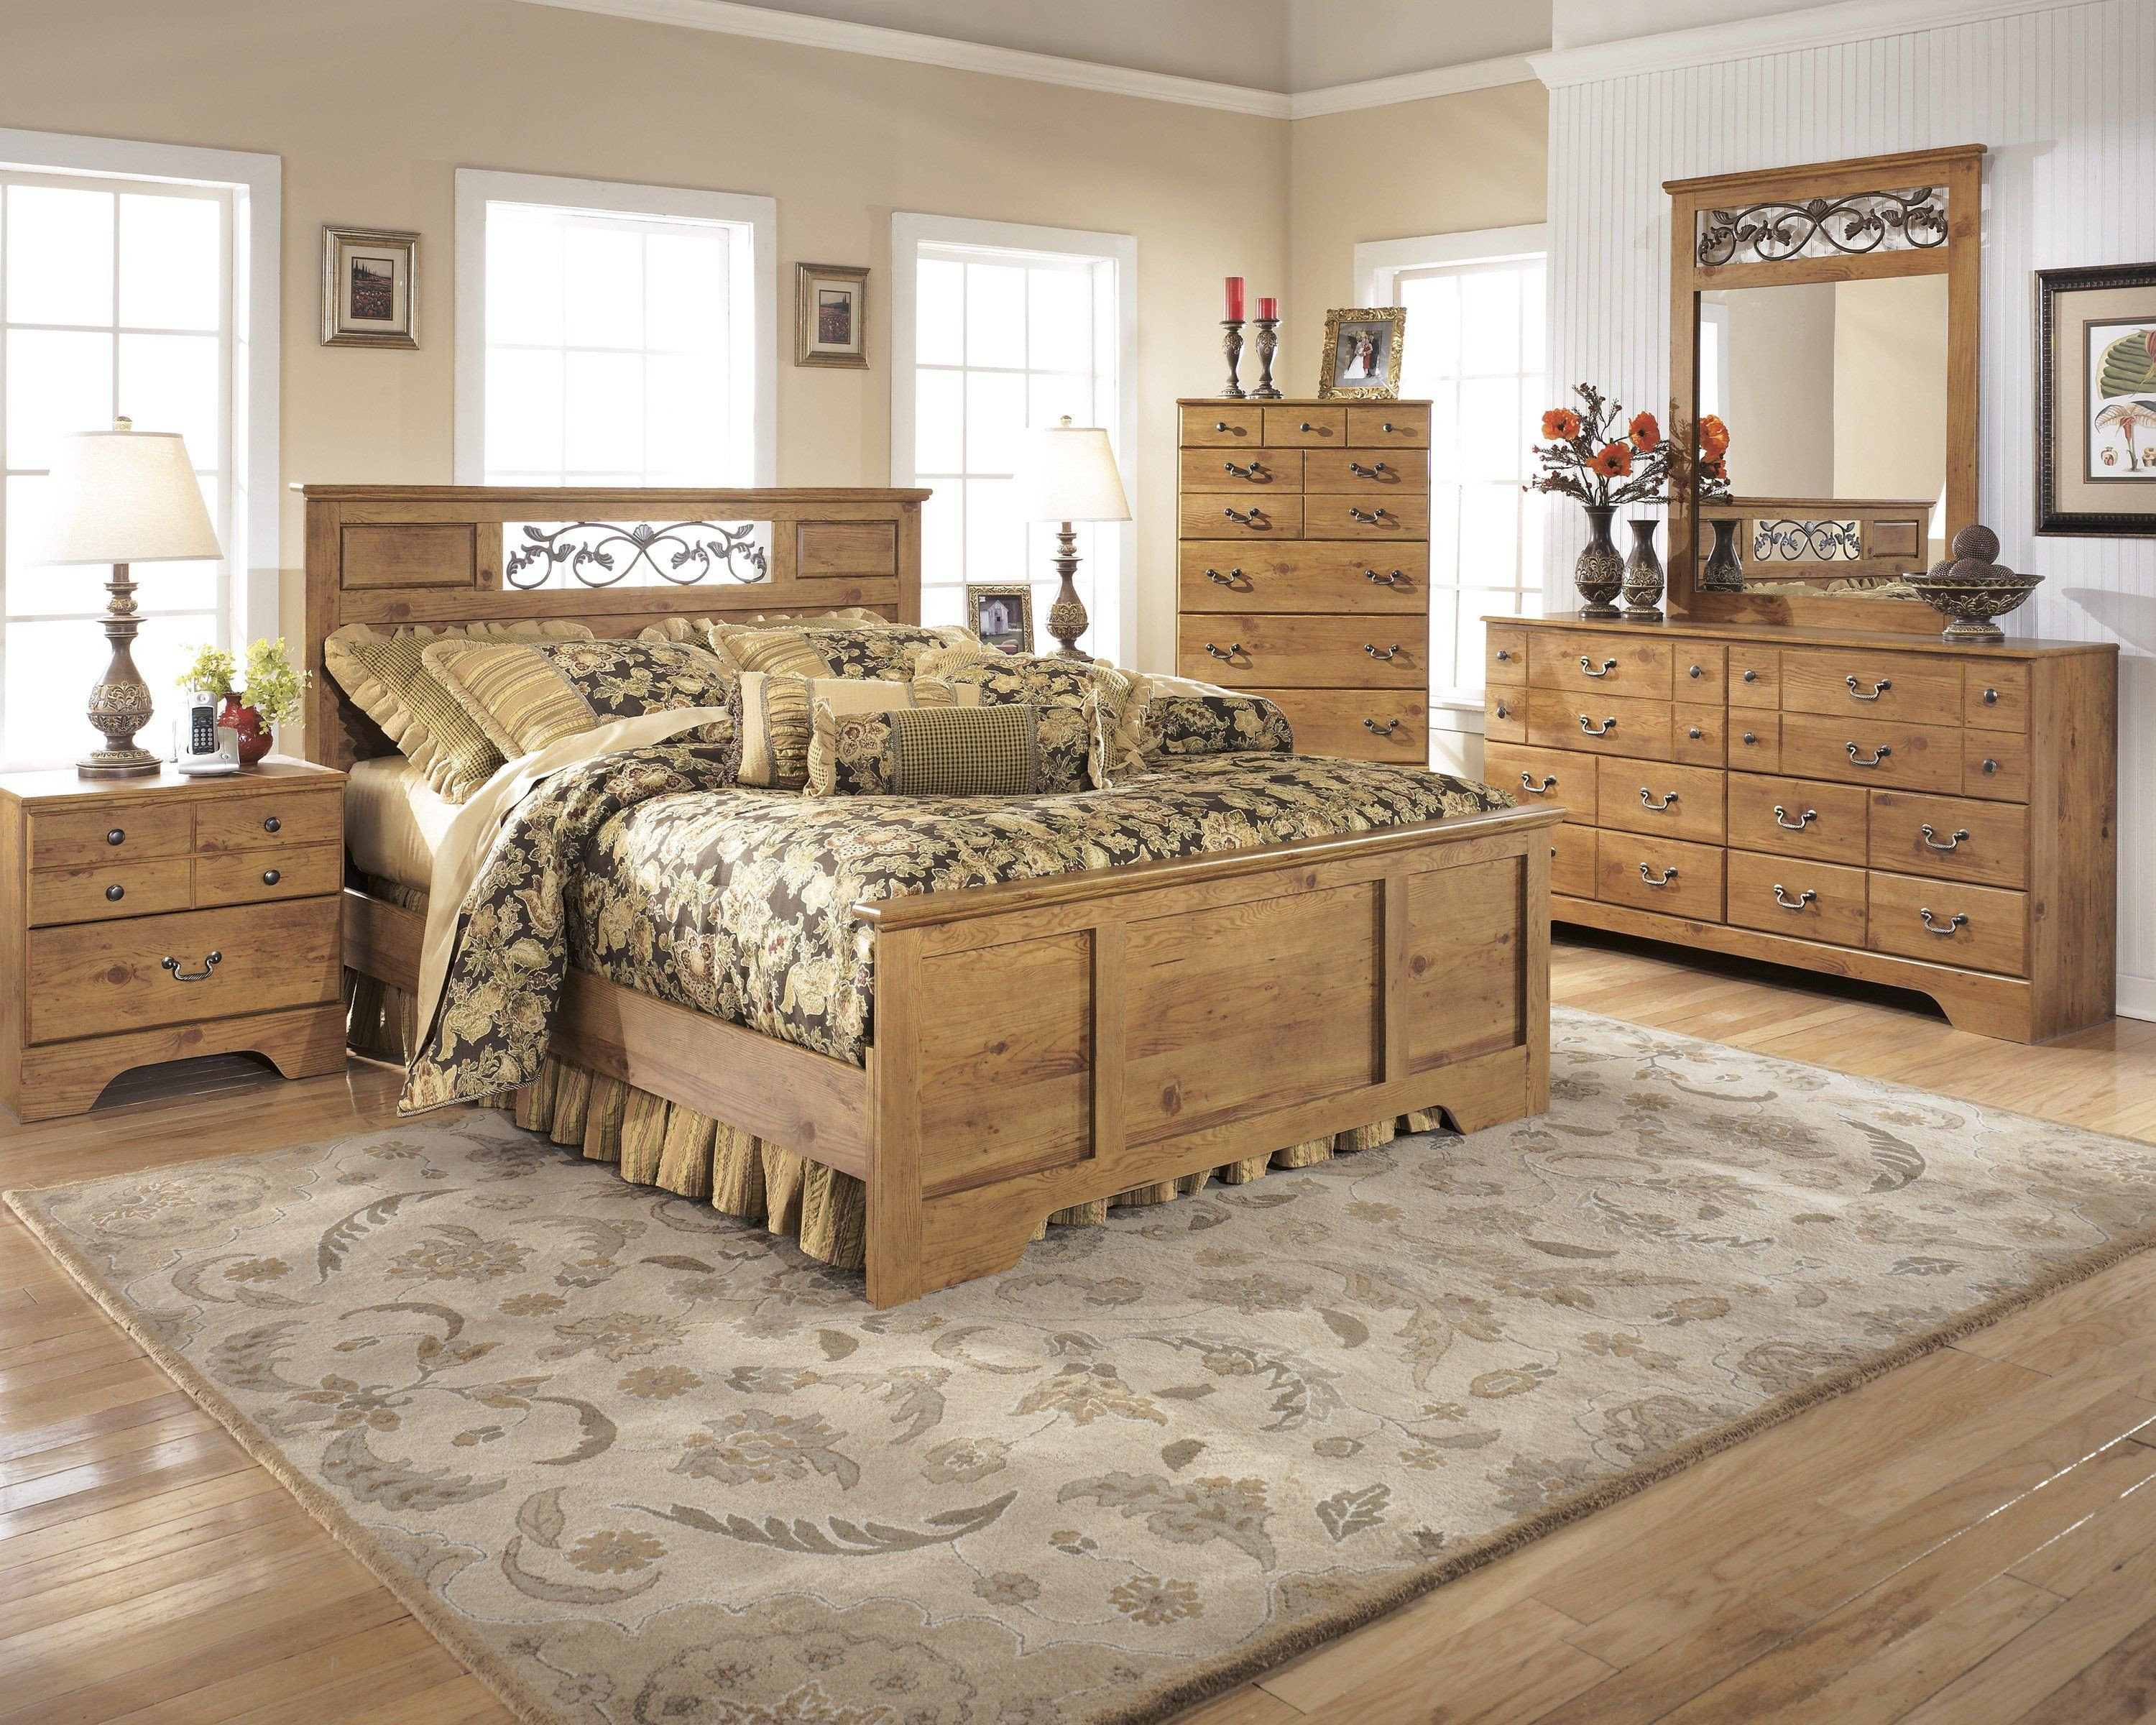 Ashley Furniture Queen Size Bedroom Set Luxury Signature Design by ashley Bittersweet 4 Piece Queen Panel